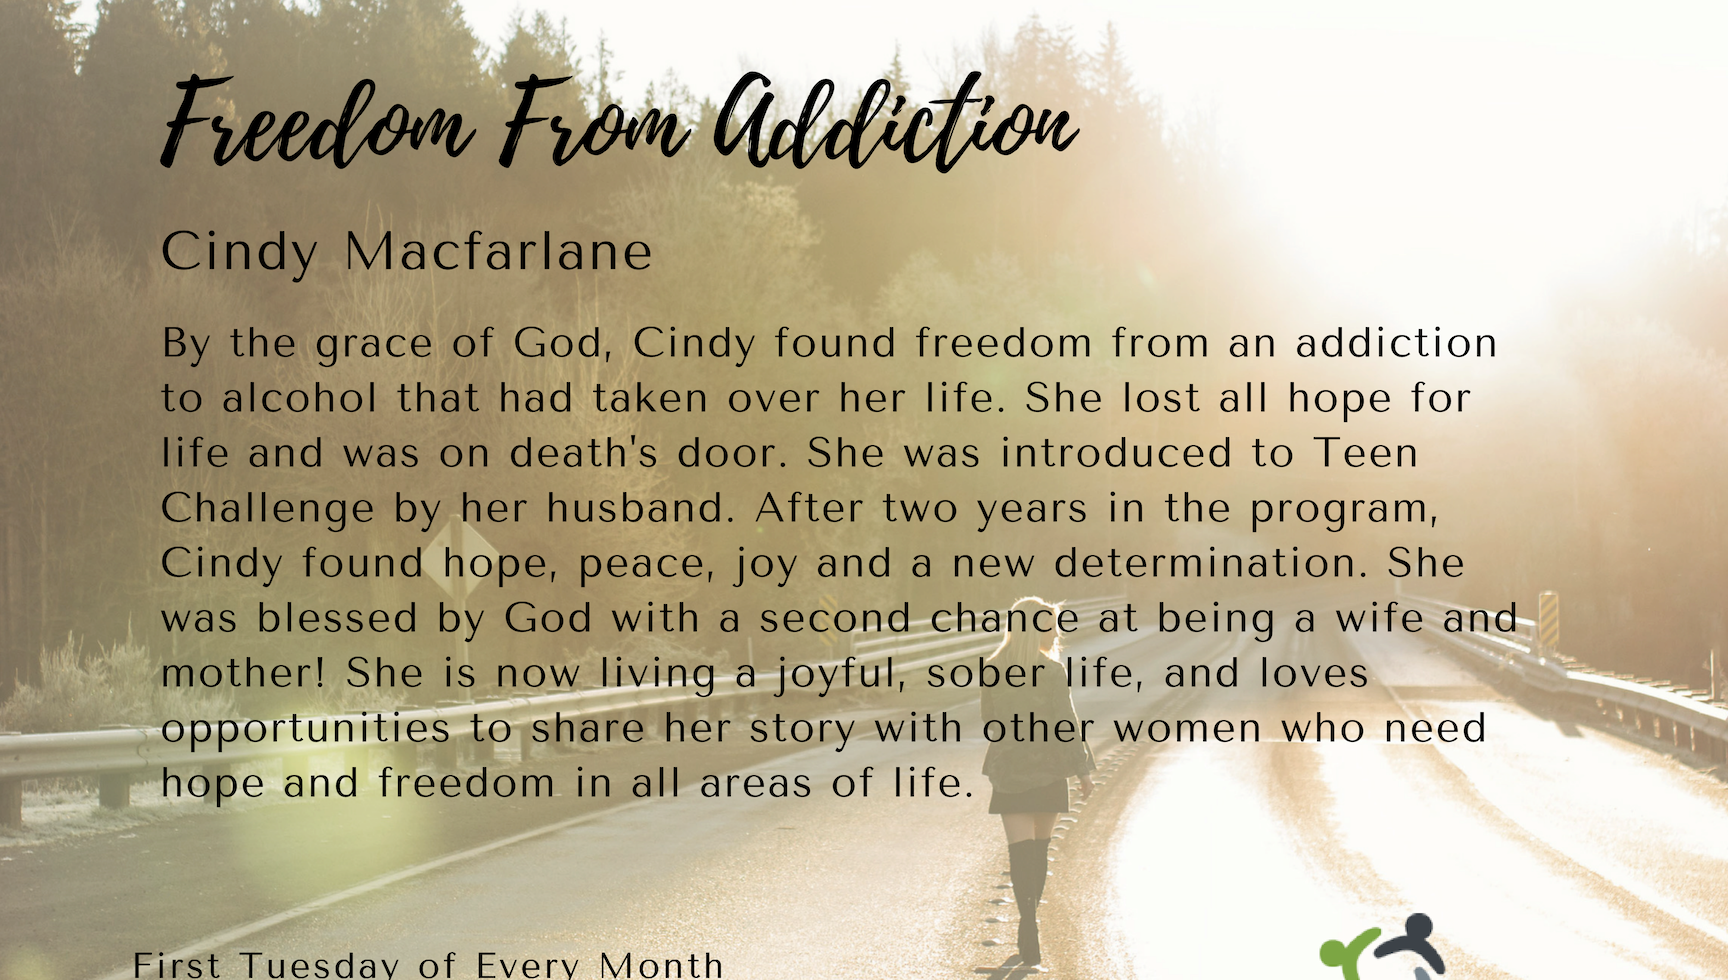 HERstory – Freedom from Addiction by Cindy Macfarlane